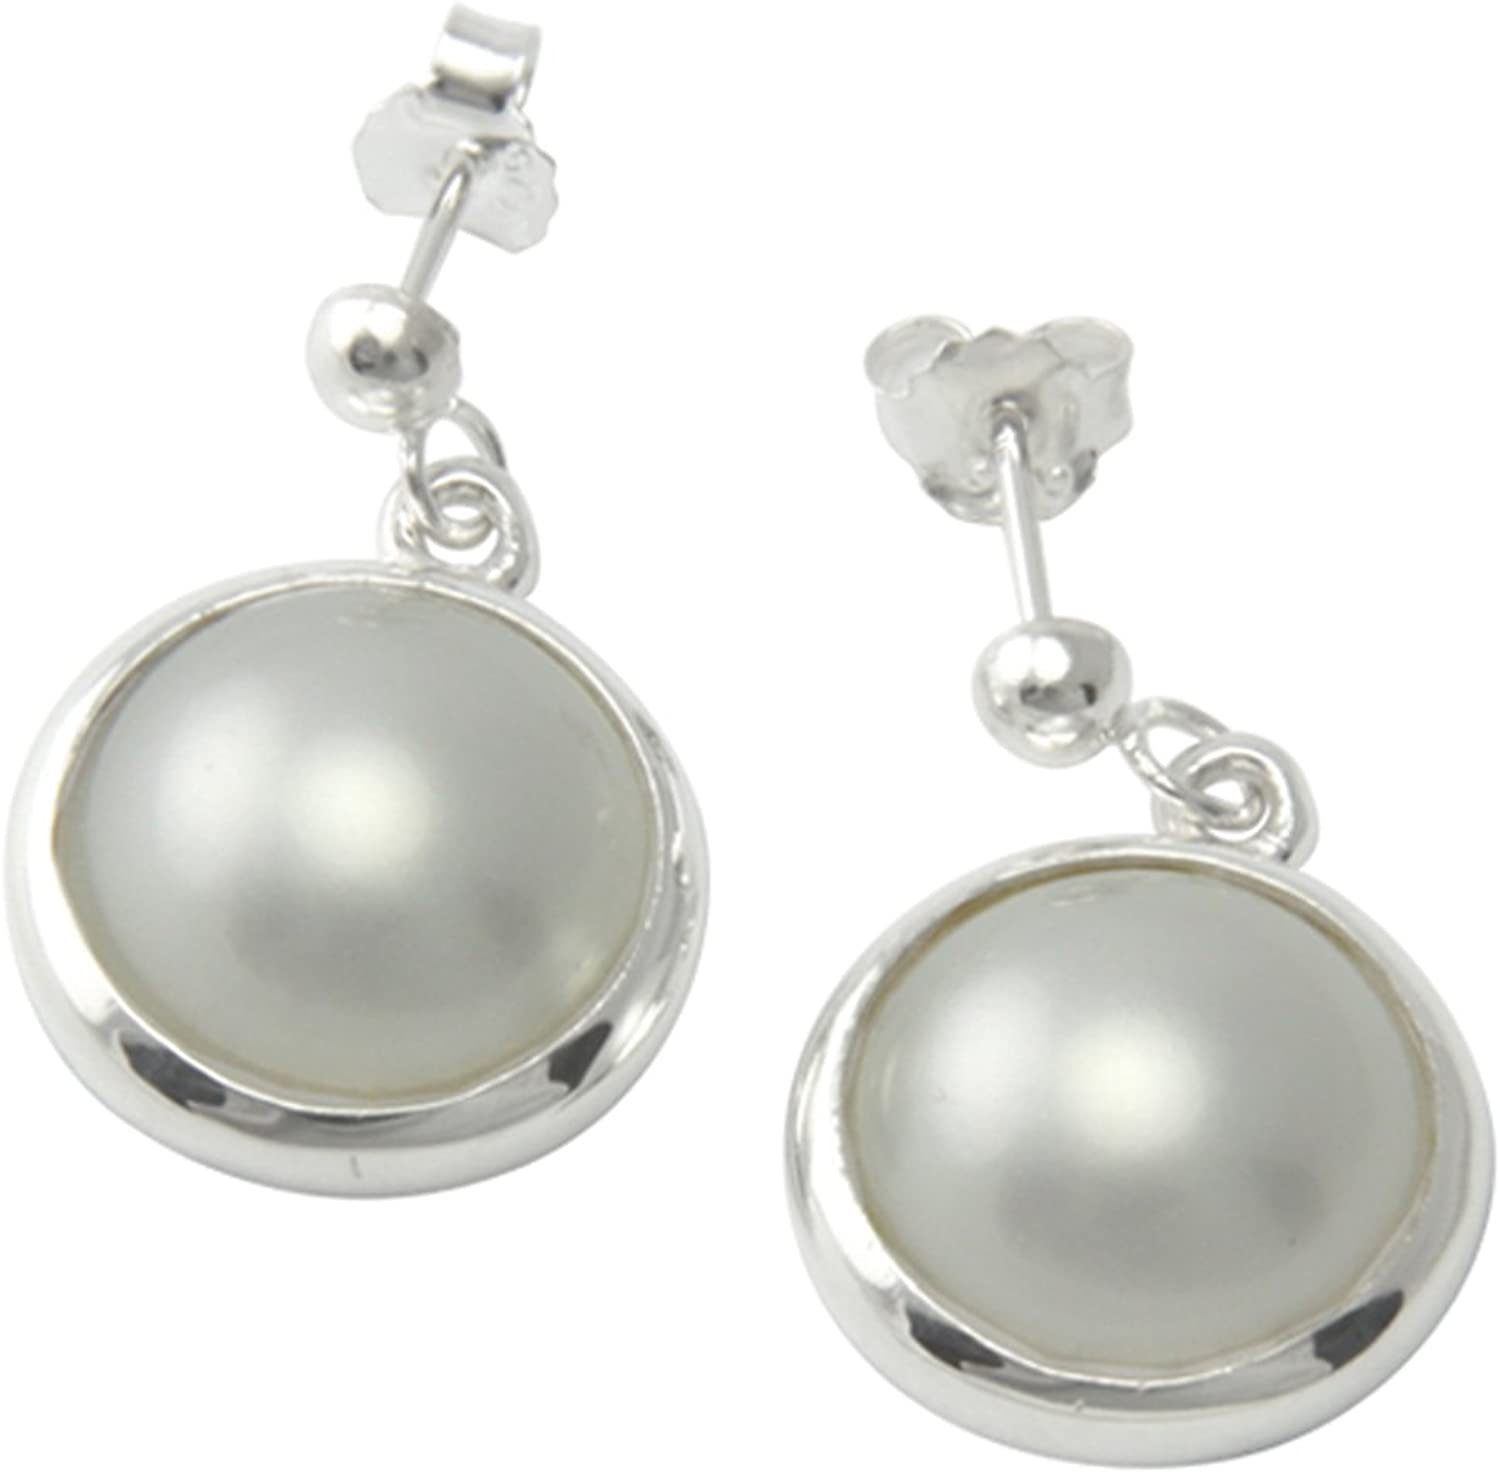 UNIKAT 925 Sterling Silver Earrings with Pearls  goldsmith Quality